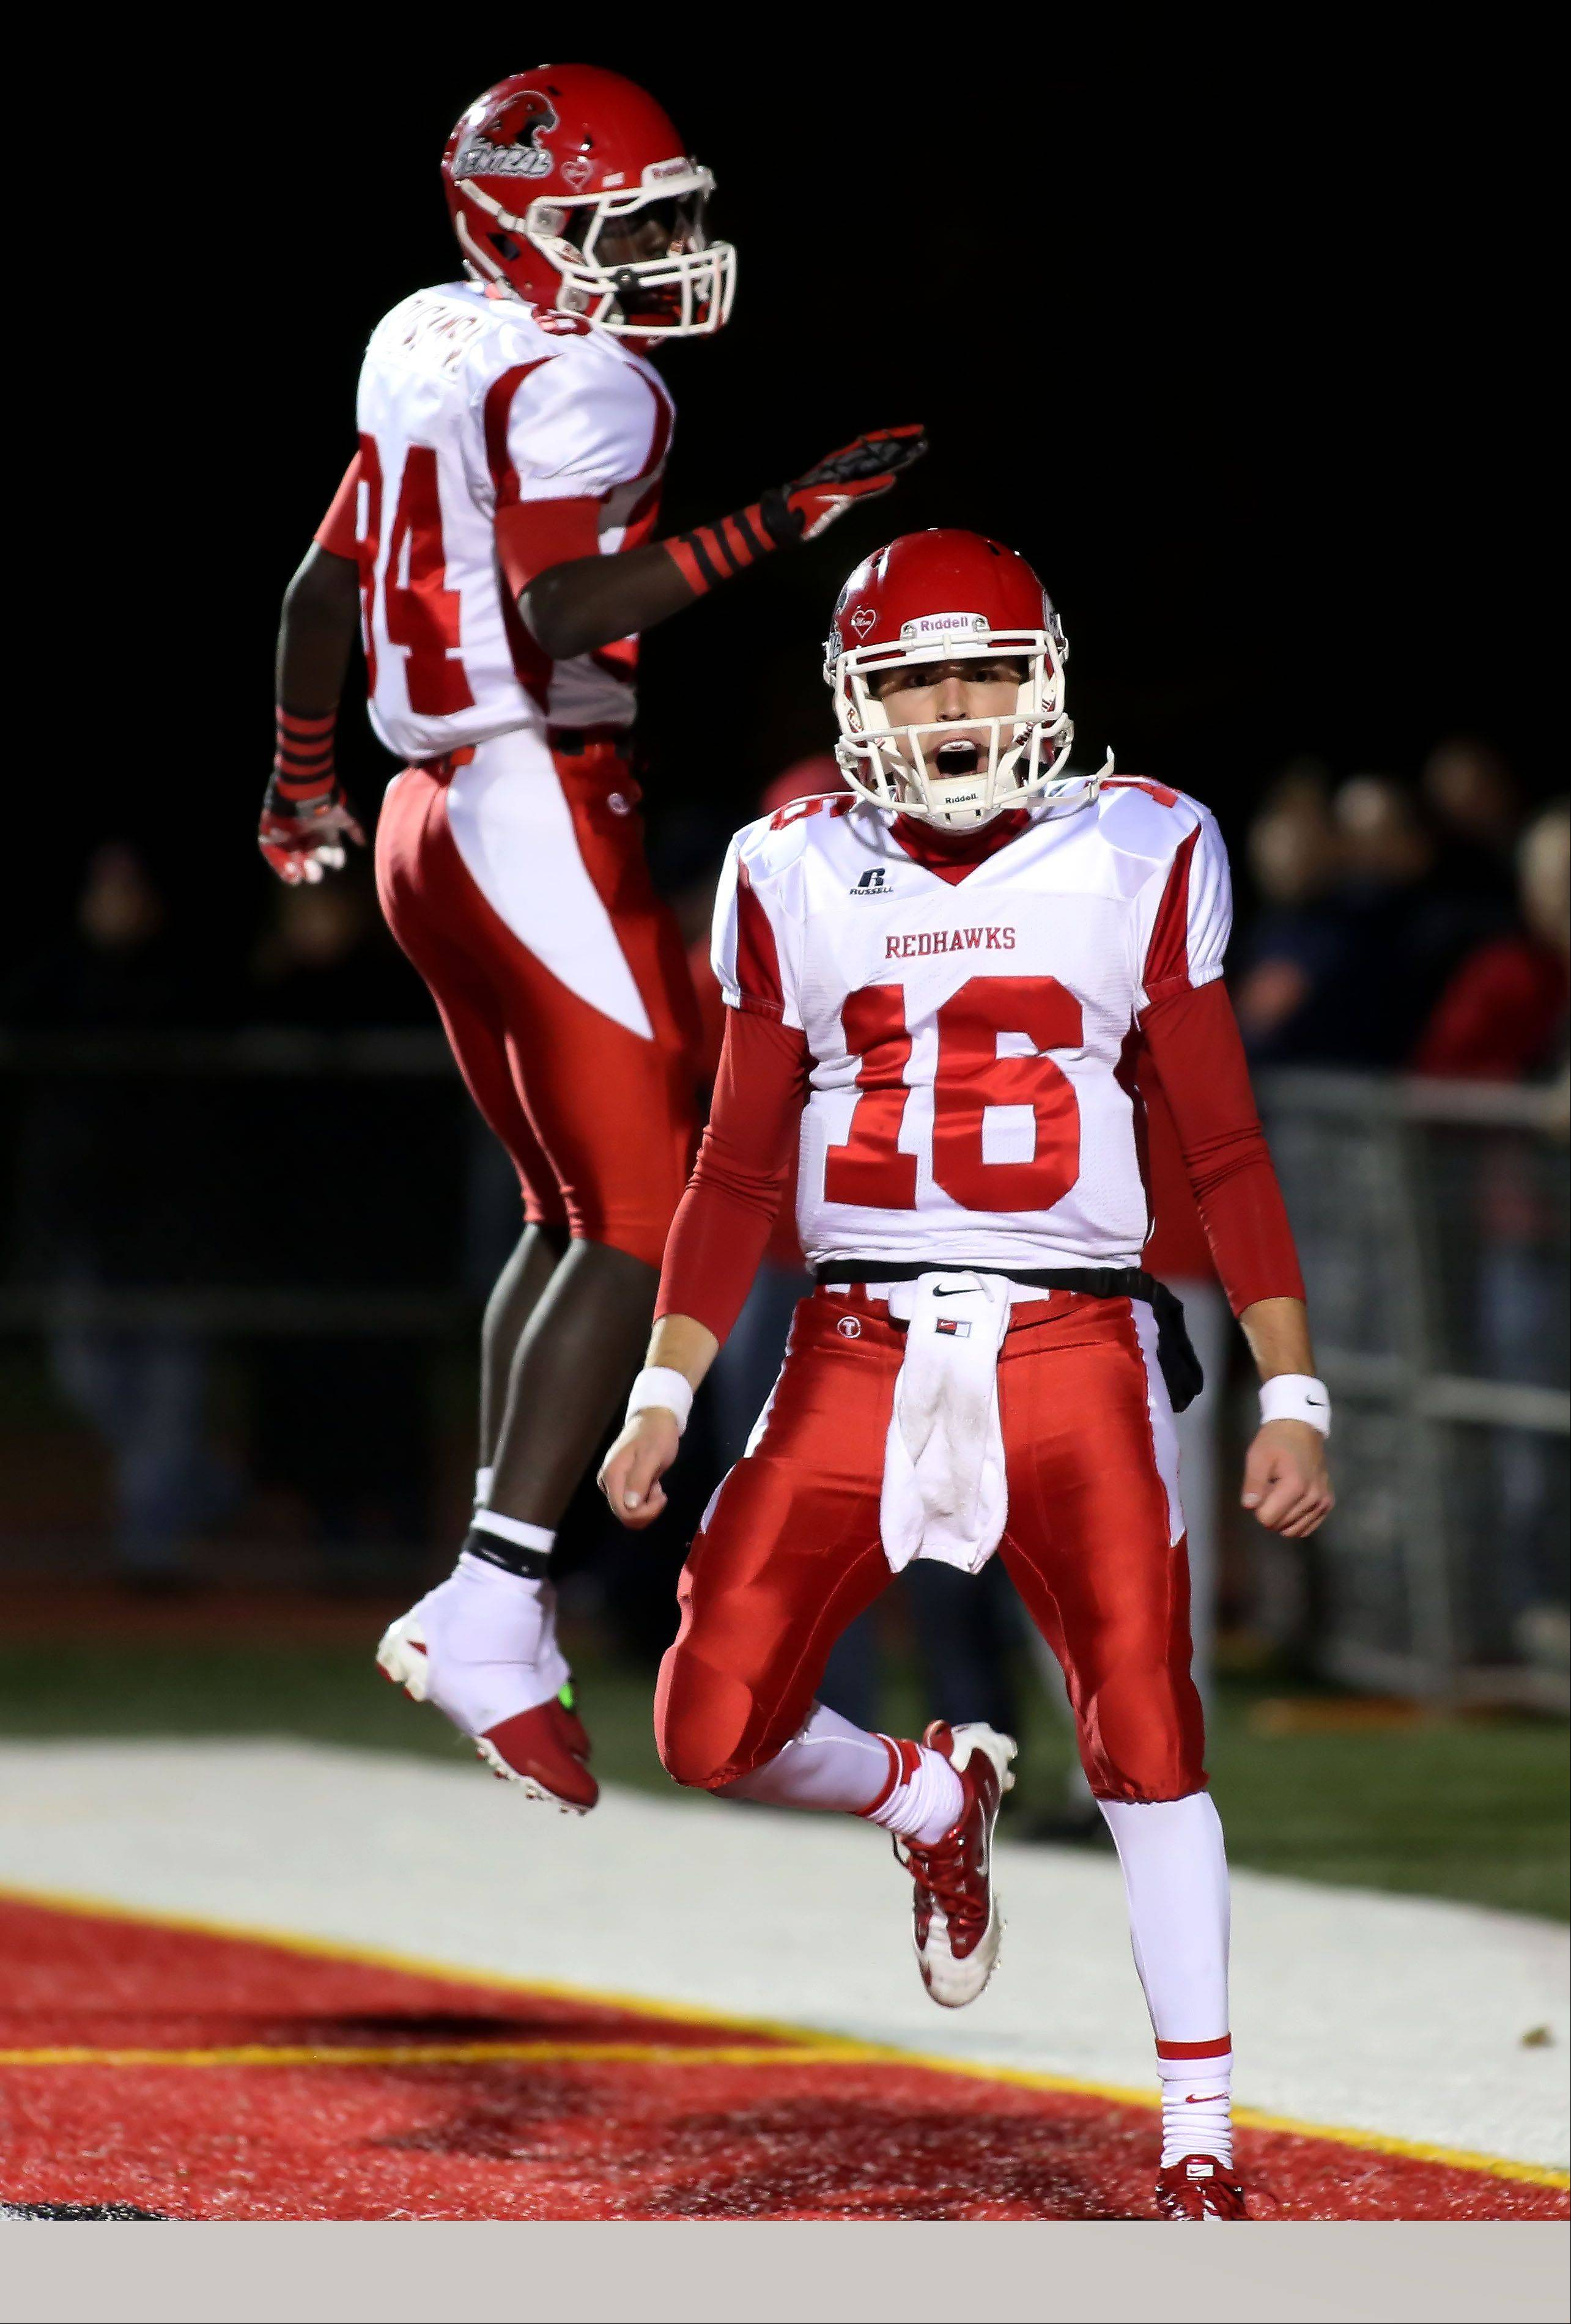 Quarterback Jake Kolbe, right, of Naperville Central celebrates with Emmanuel Rugamba, left, after making a touchdown in the first quarter.